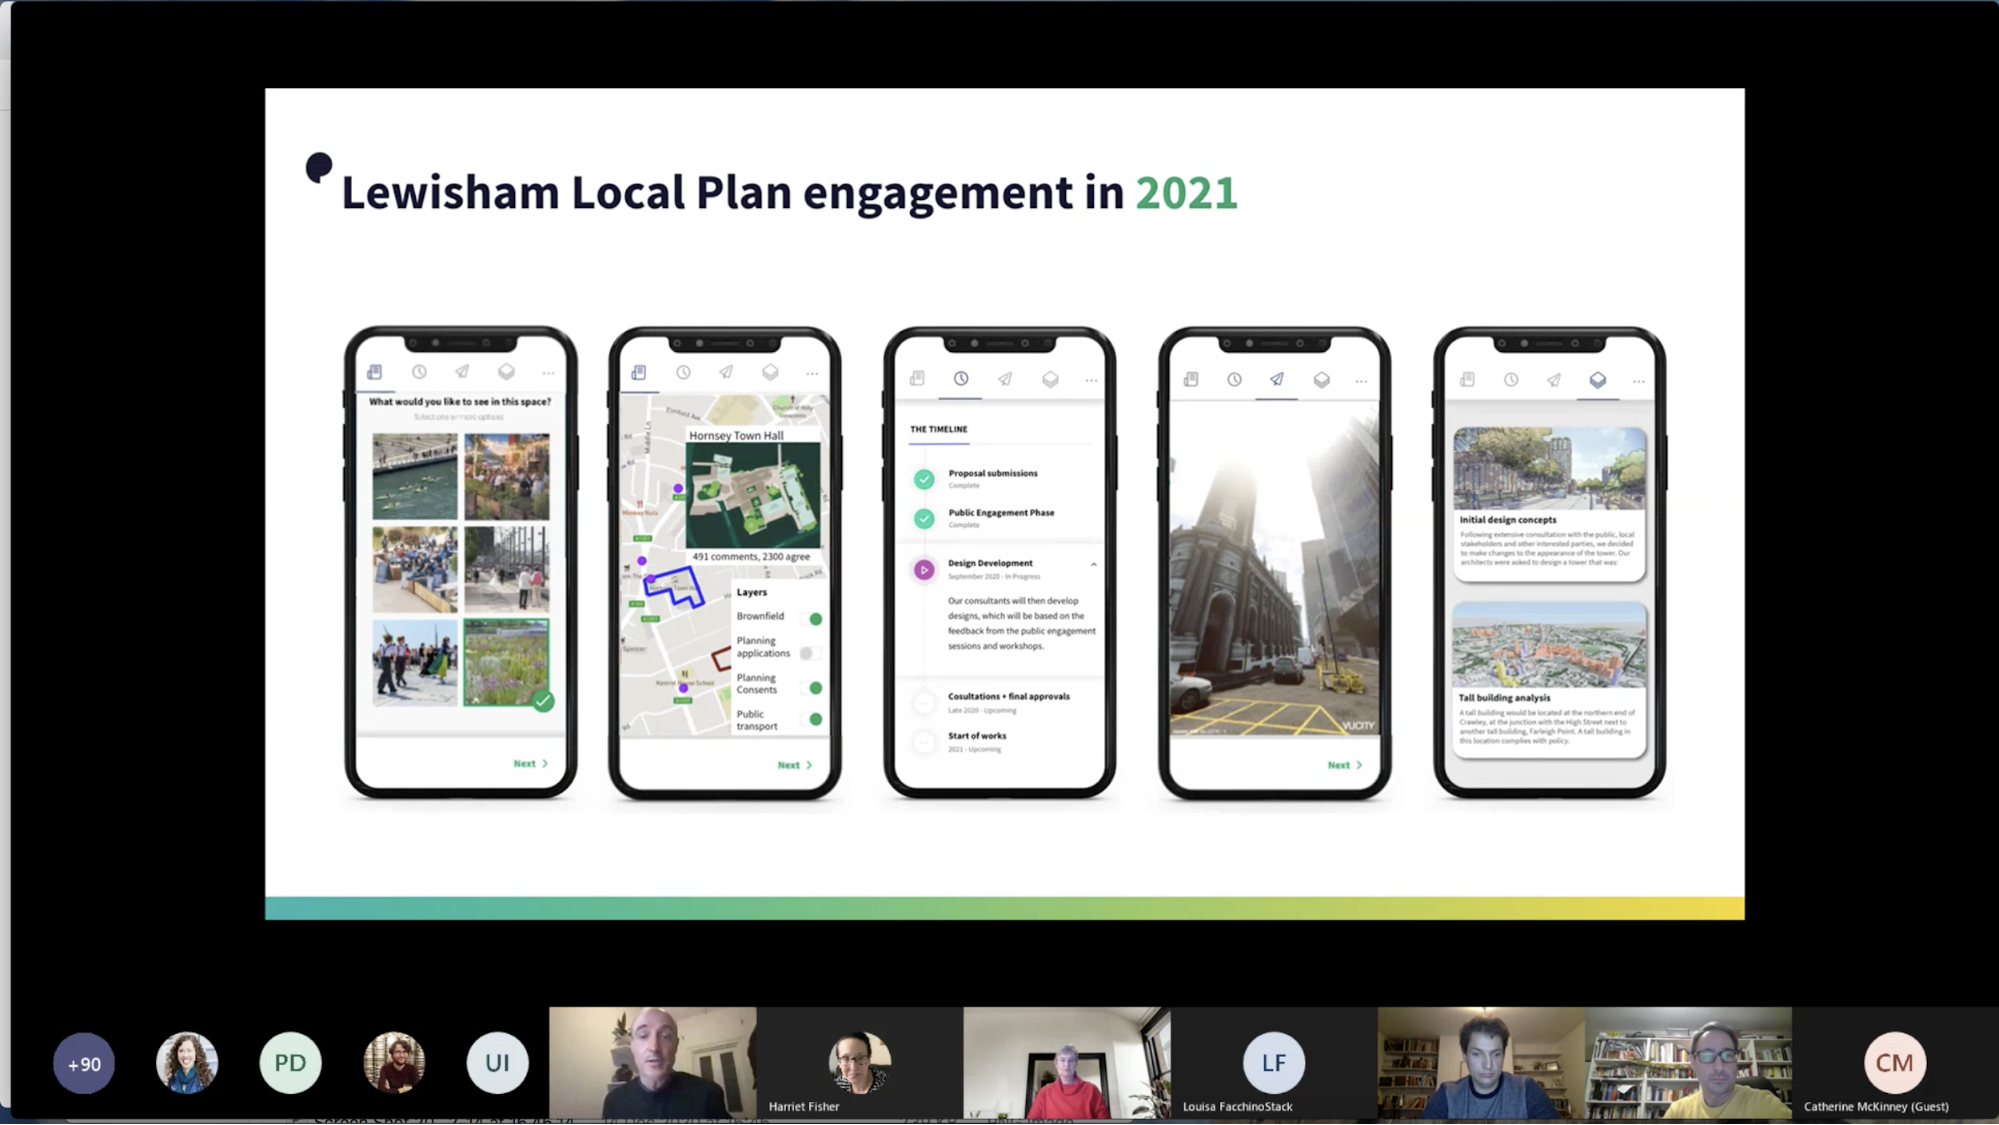 Screenshot of the PropTech event video call